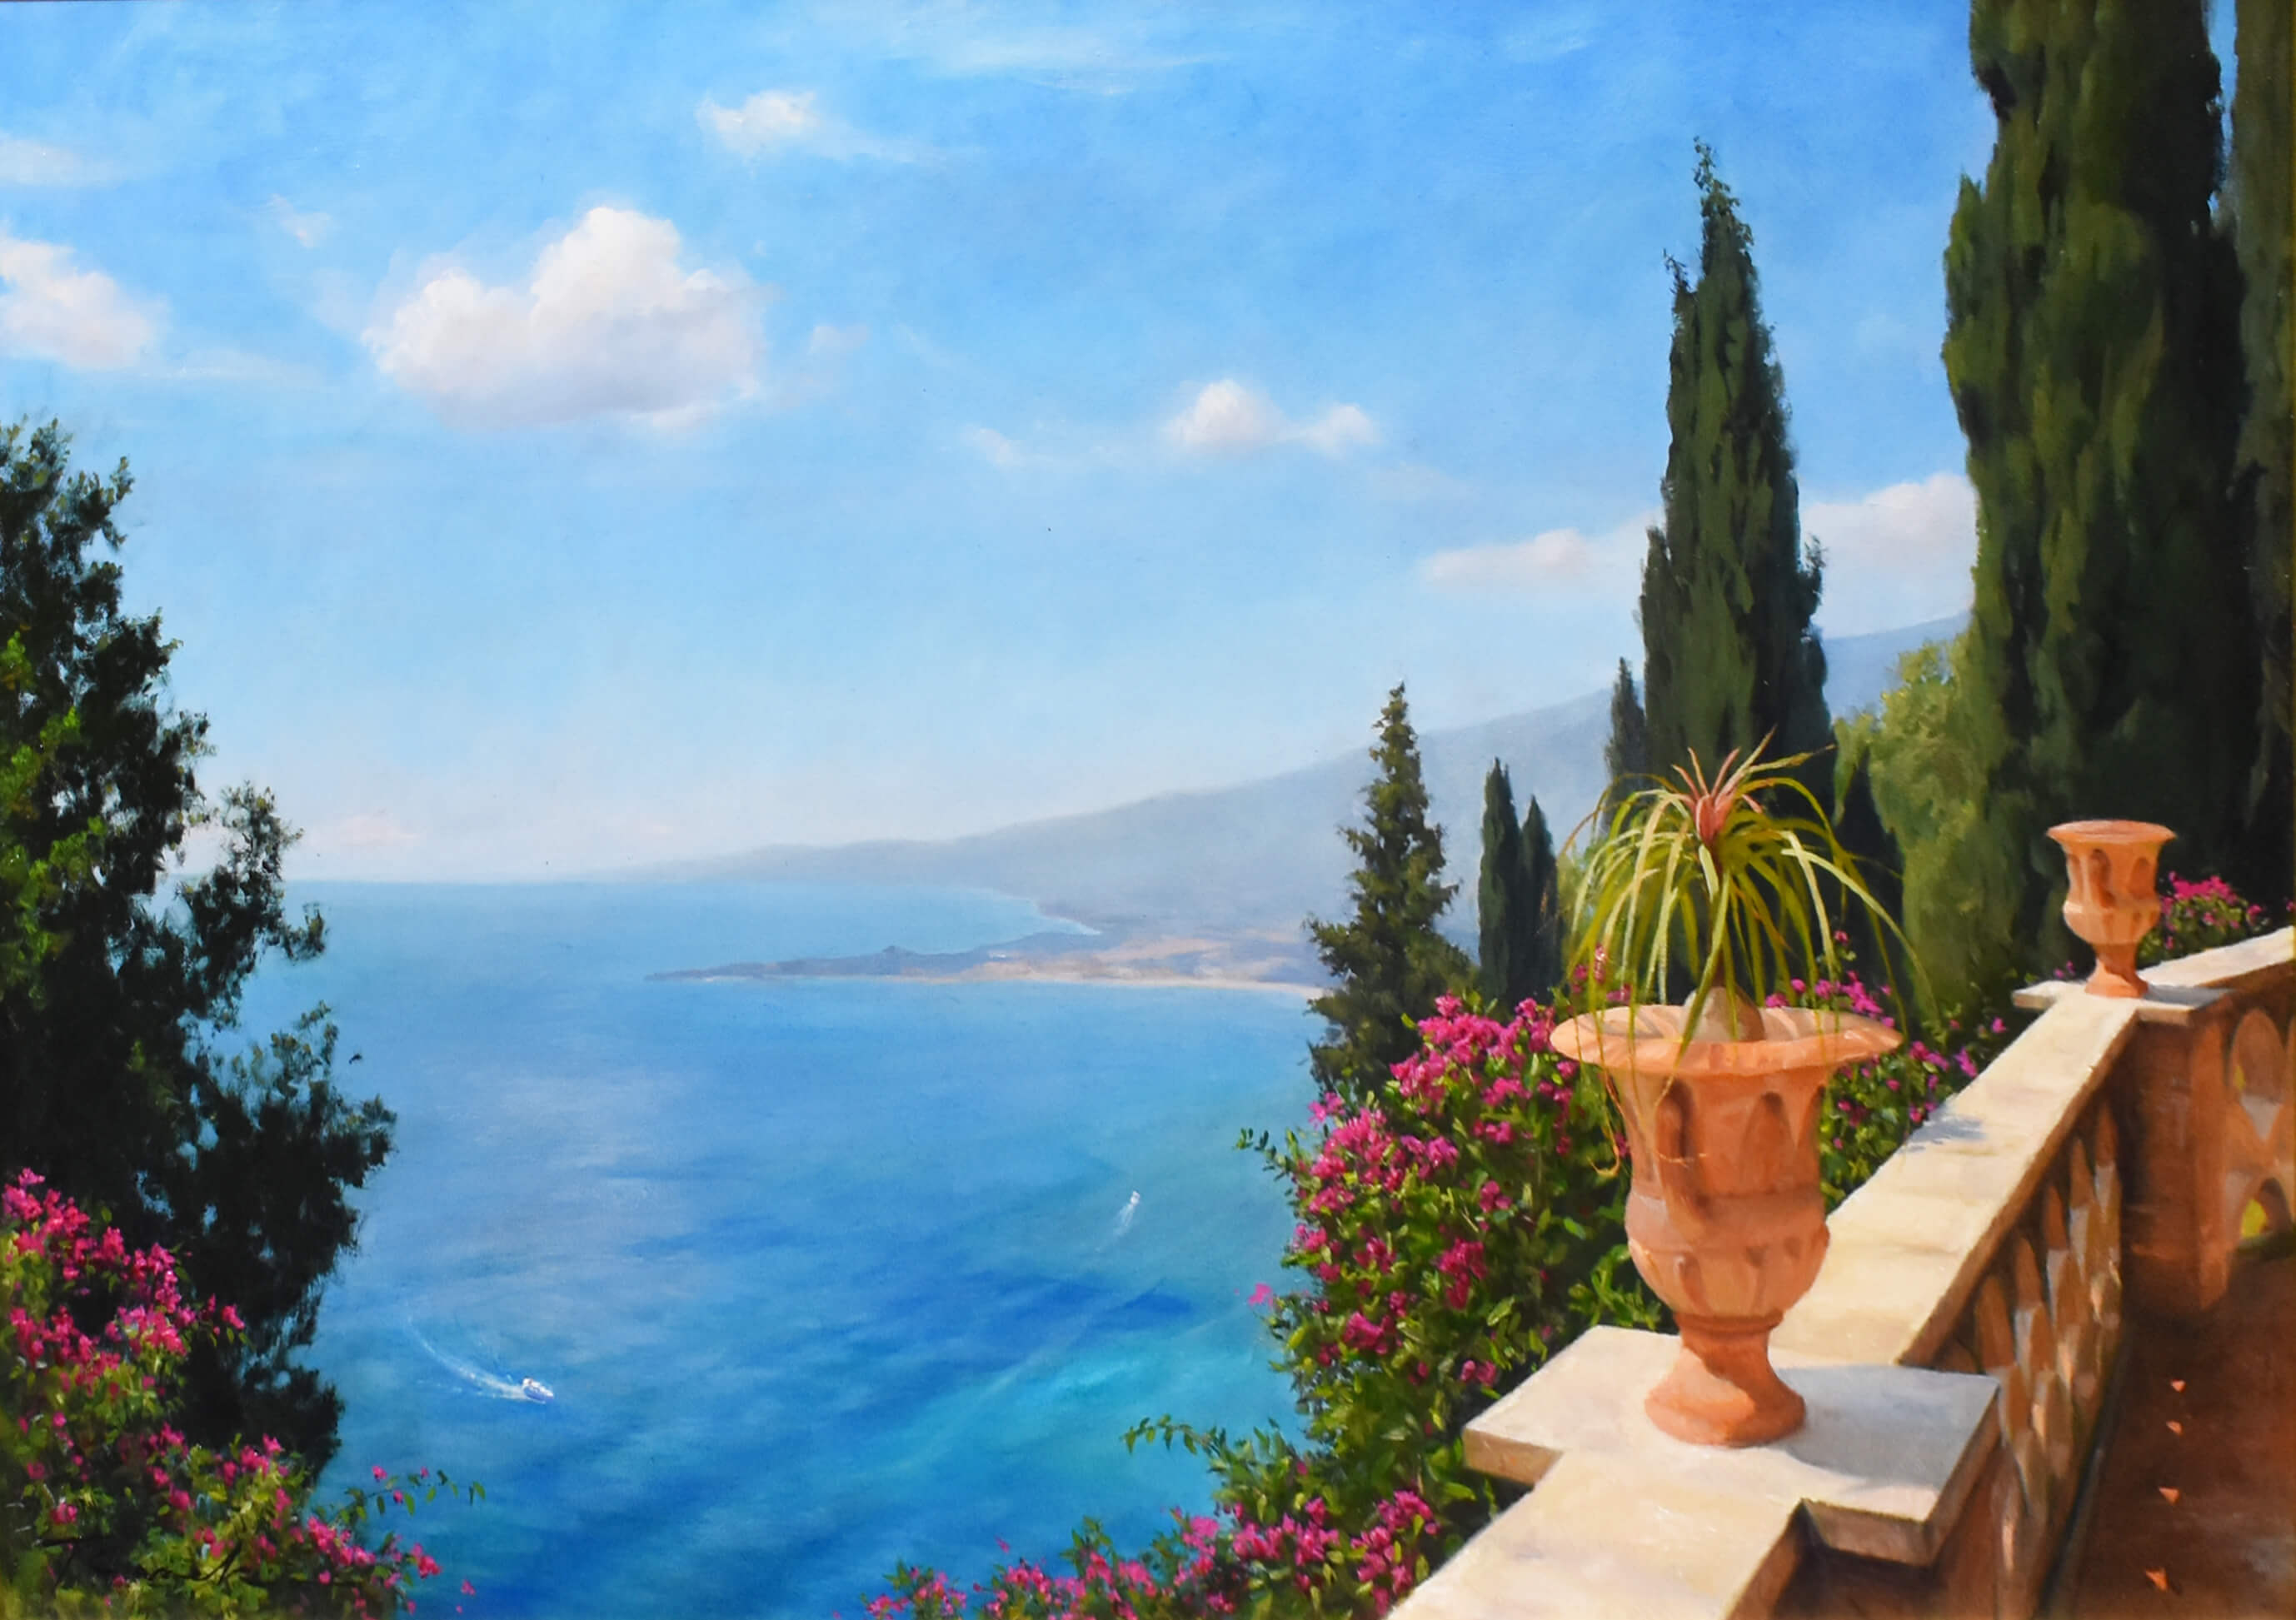 Bougainvillea blooms ionian sea view